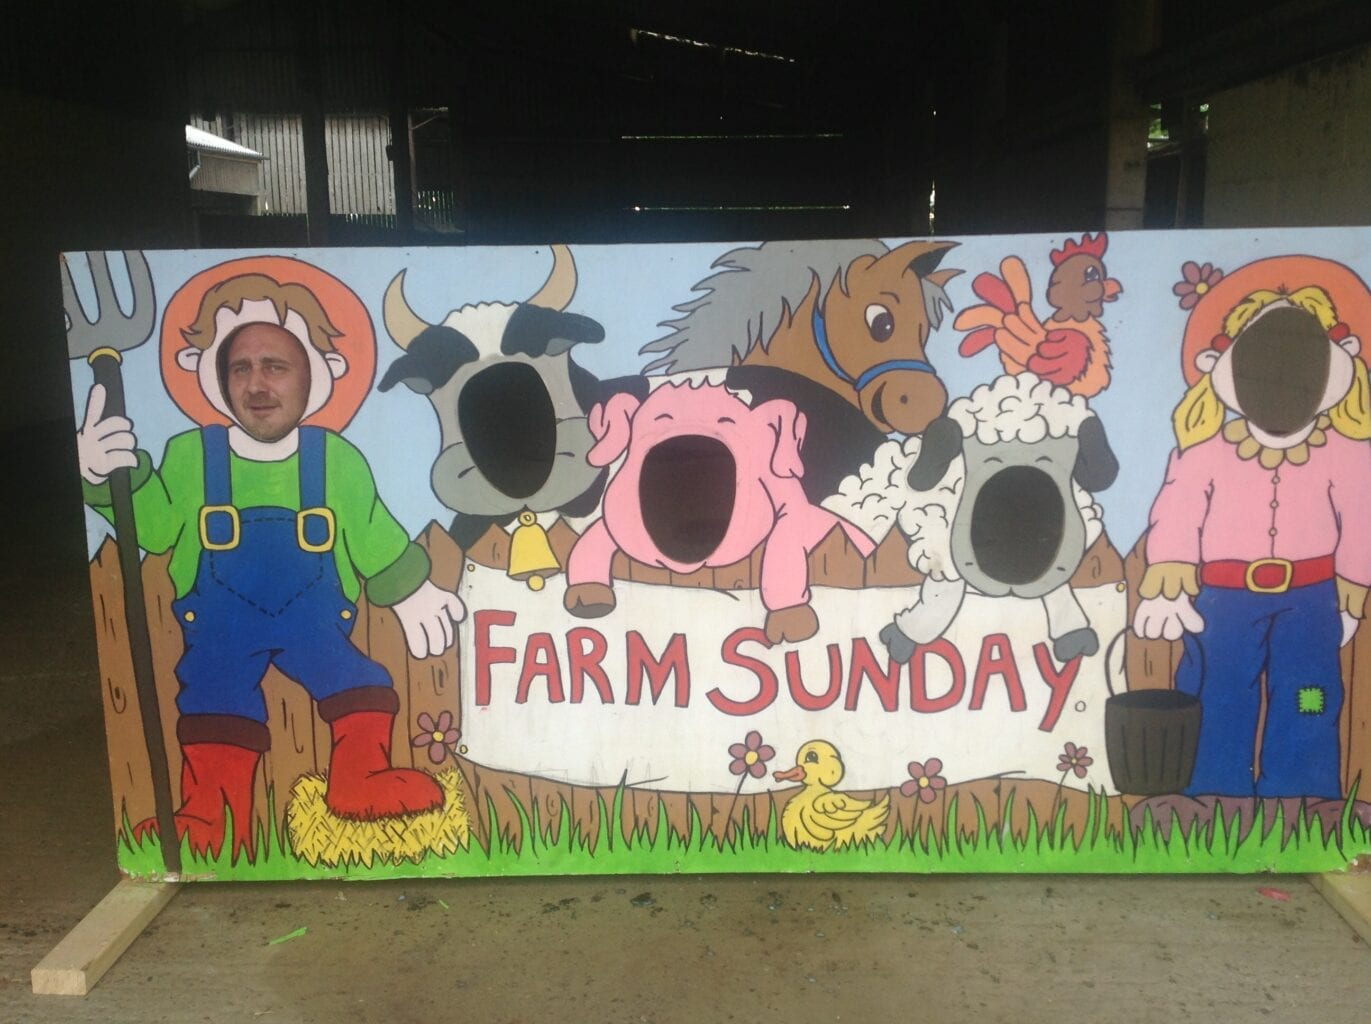 OPEN FARM SUNDAY (2)